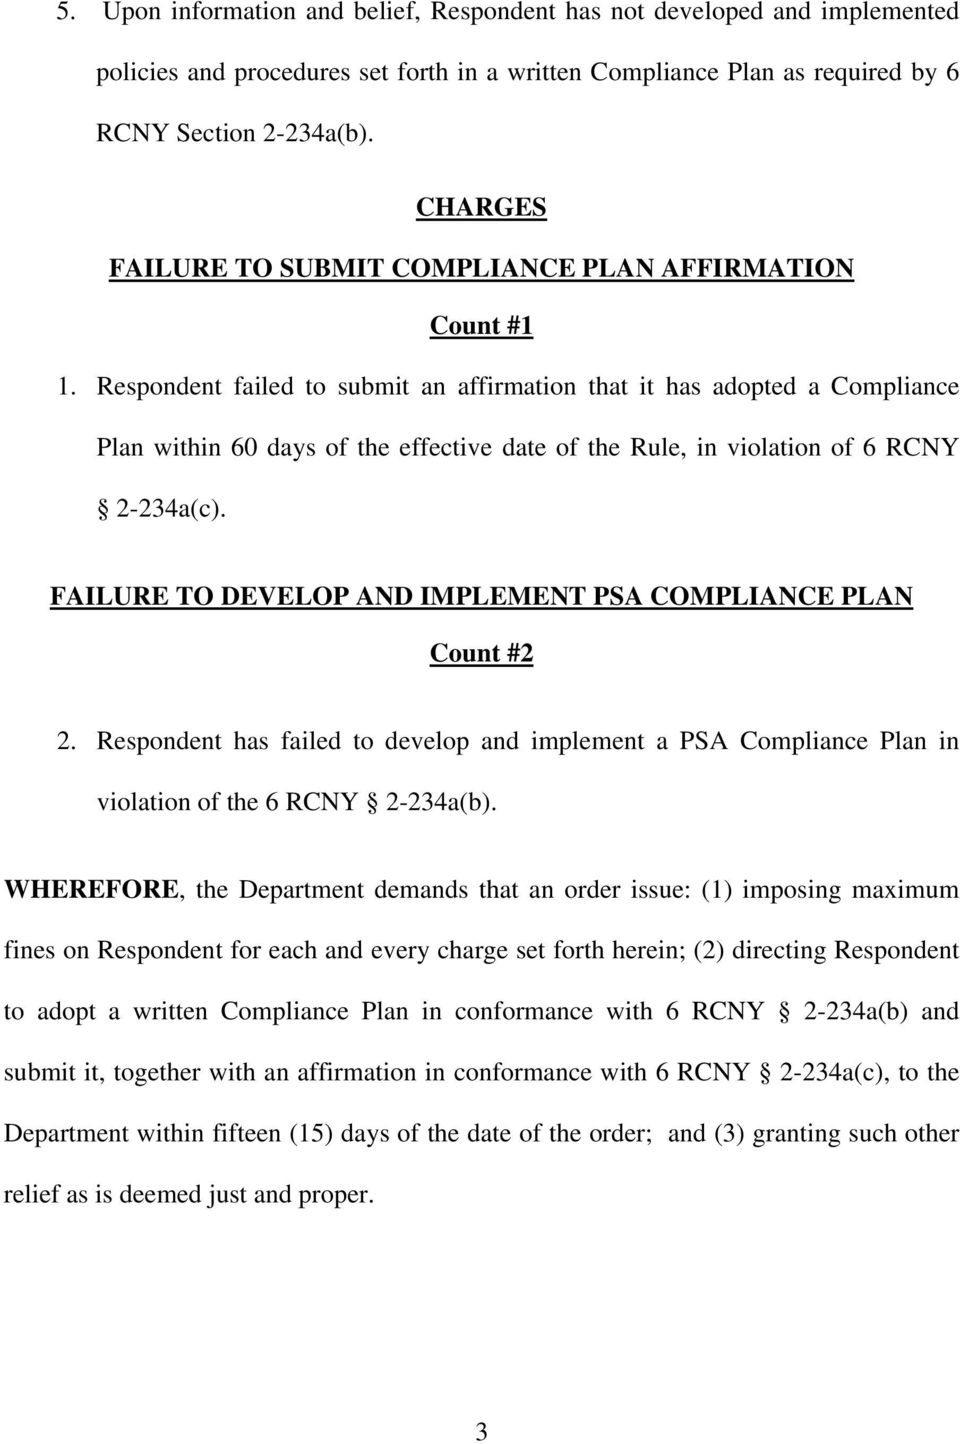 Respondent failed to submit an affirmation that it has adopted a Compliance Plan within 60 days of the effective date of the Rule, in violation of 6 RCNY 2-234a(c).